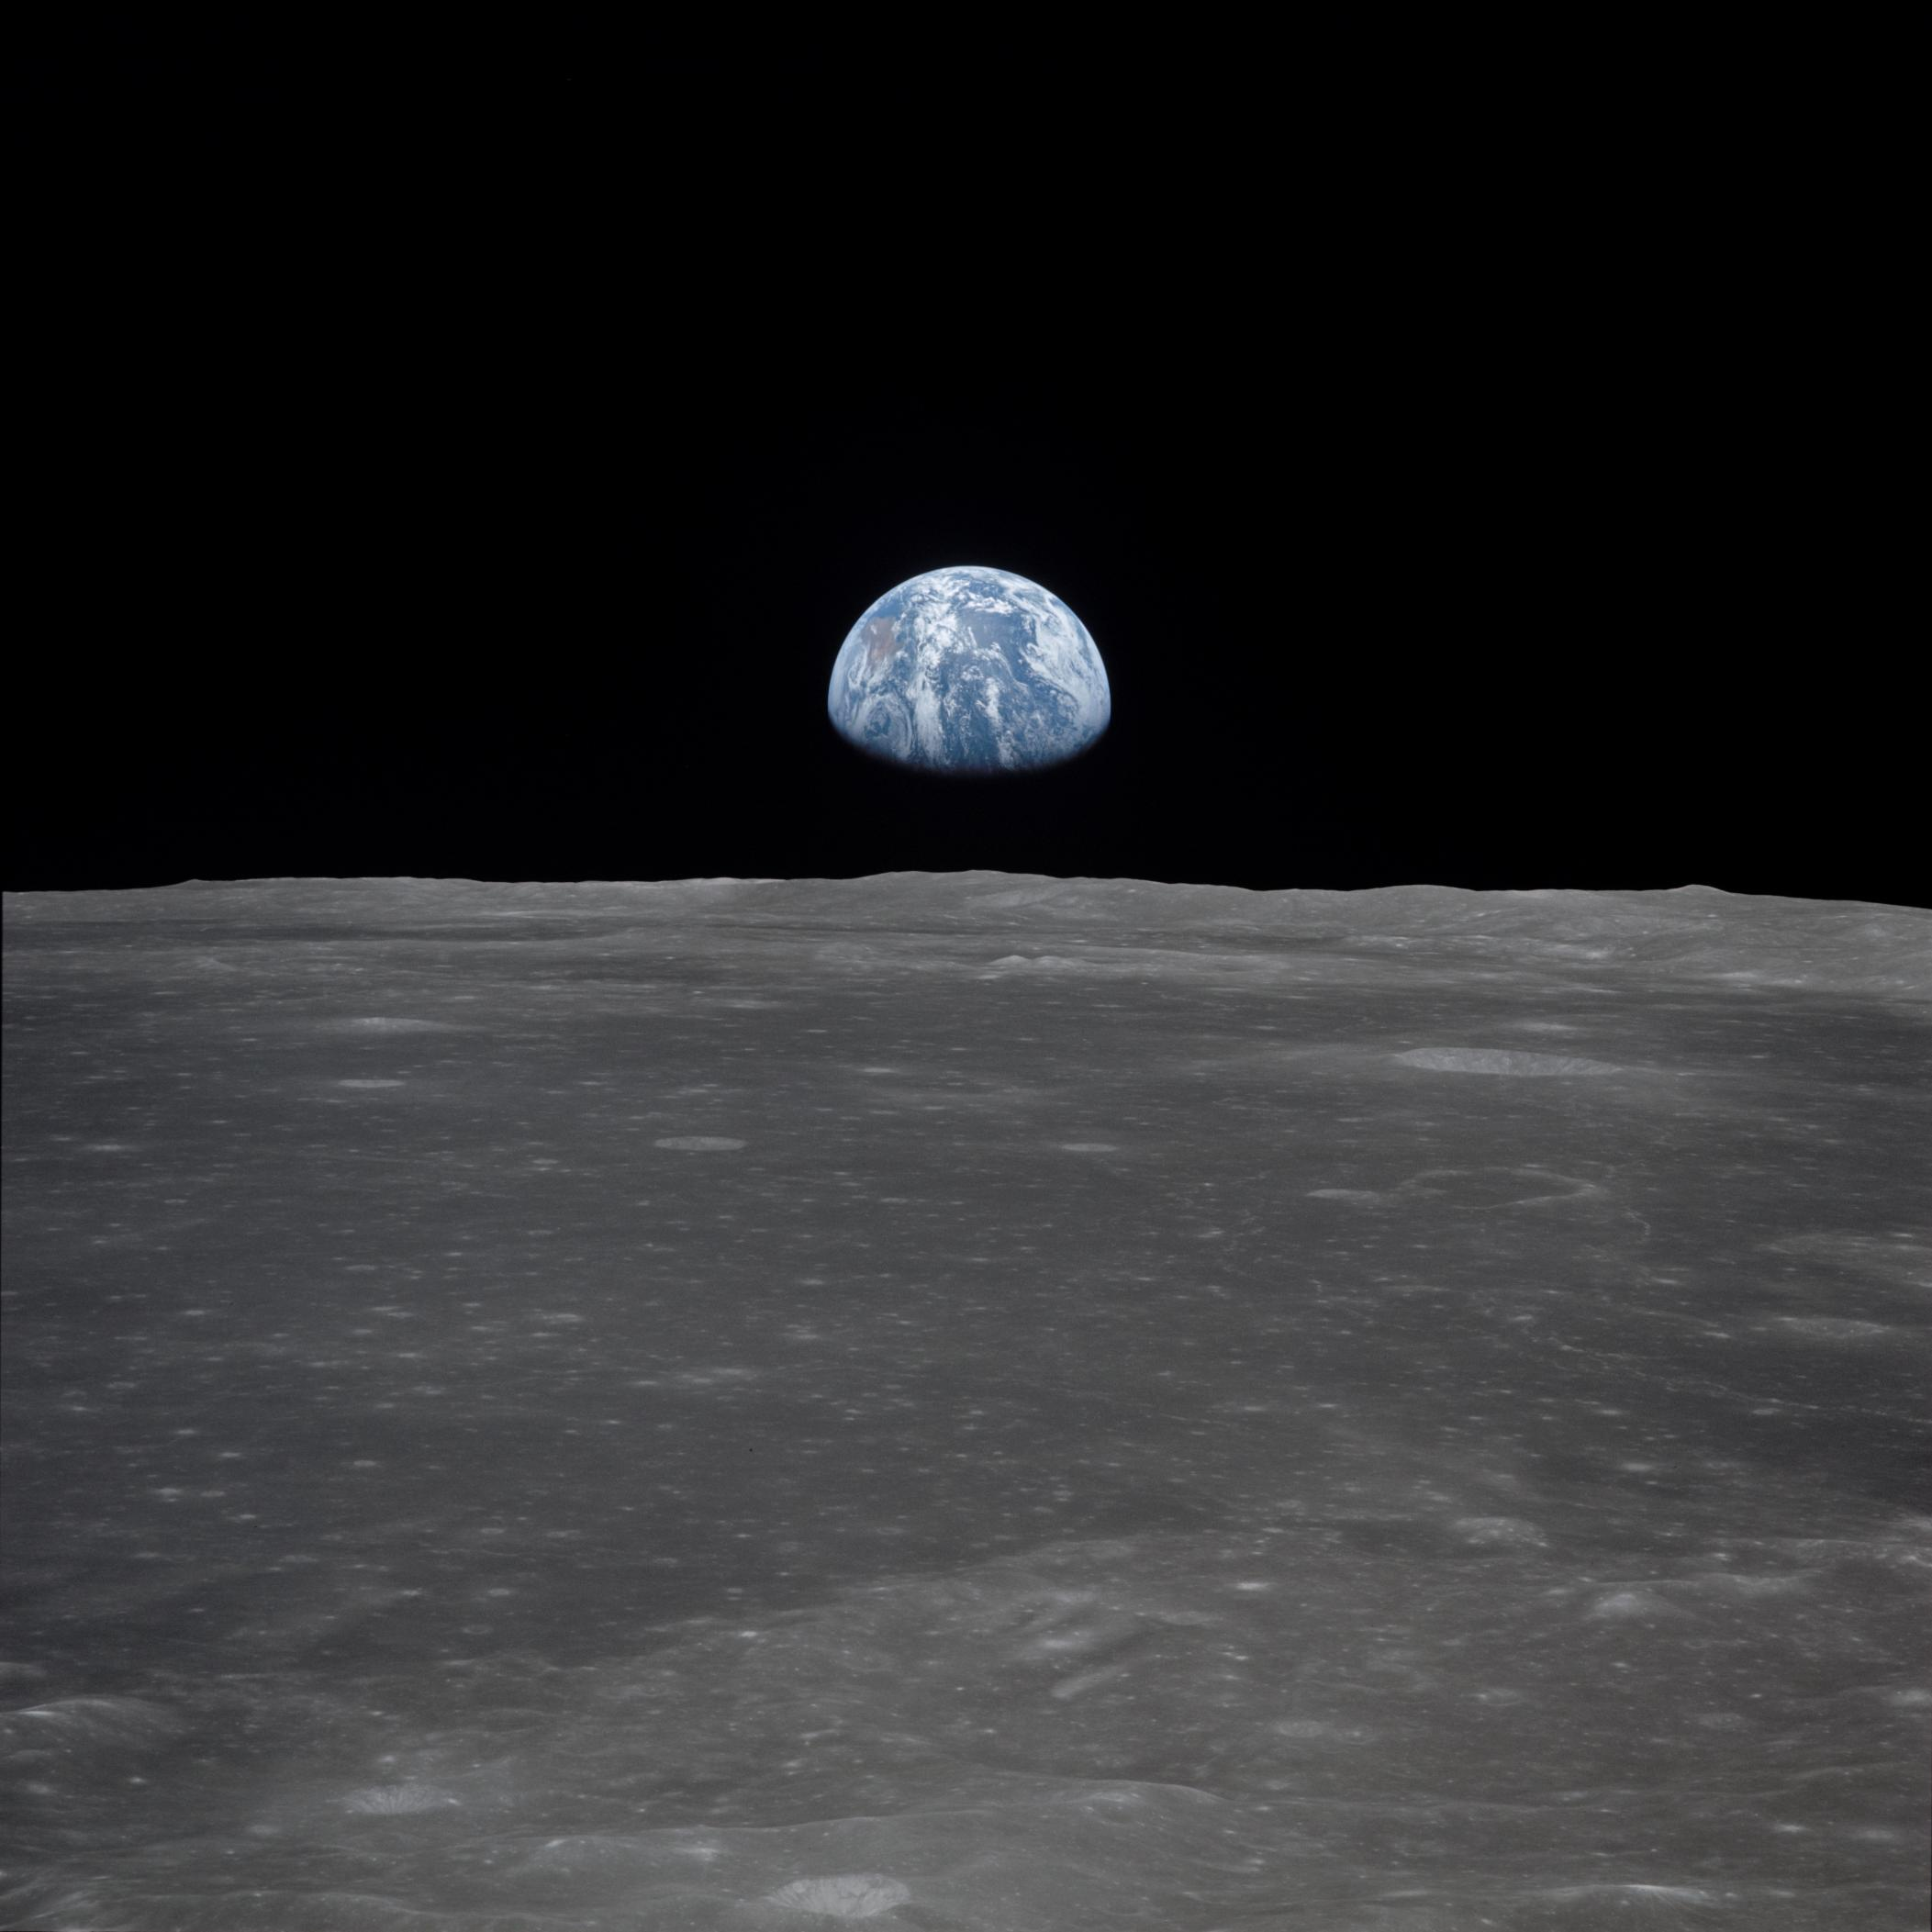 A new mini-moon is about to join Earth's orbit. It could be a booster rocket from the 60s